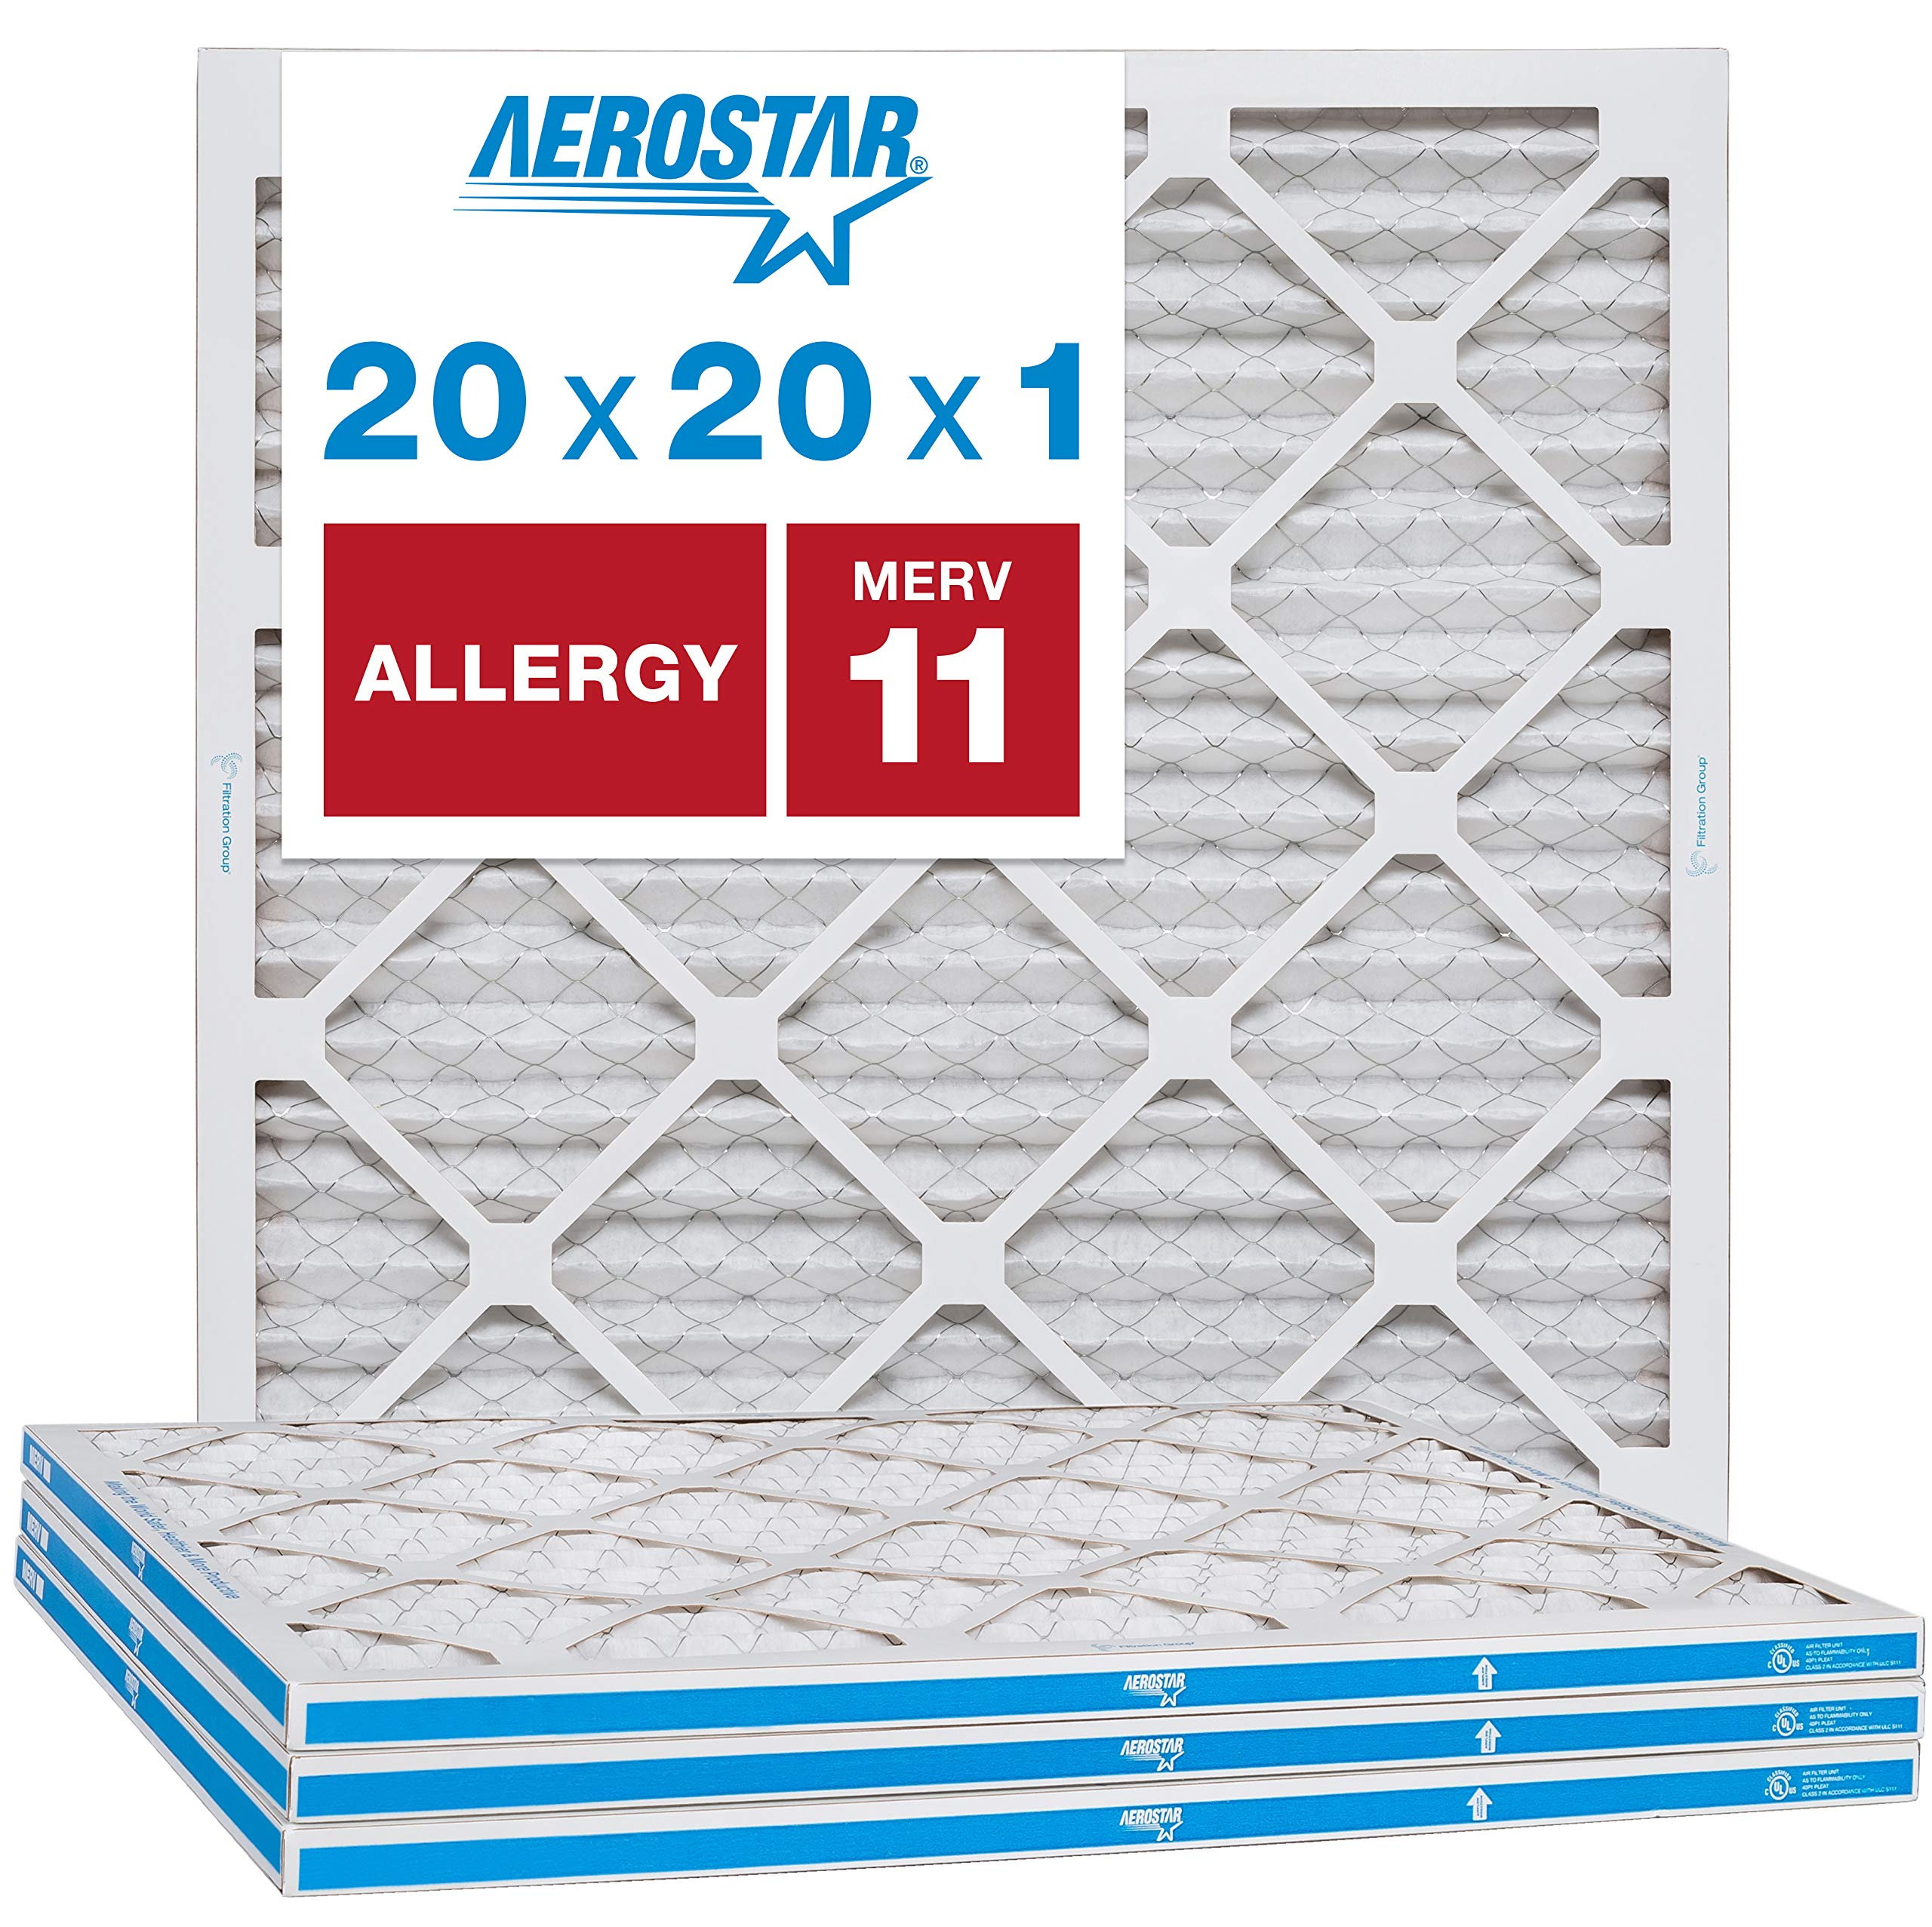 """Aerostar Allergen & Pet Dander 20x20x1 MERV 11 Pleated Air Filter, Made in The USA, (Actual Size: 19 3/4""""x19 3/4""""x3/4""""), 4-Pack"""